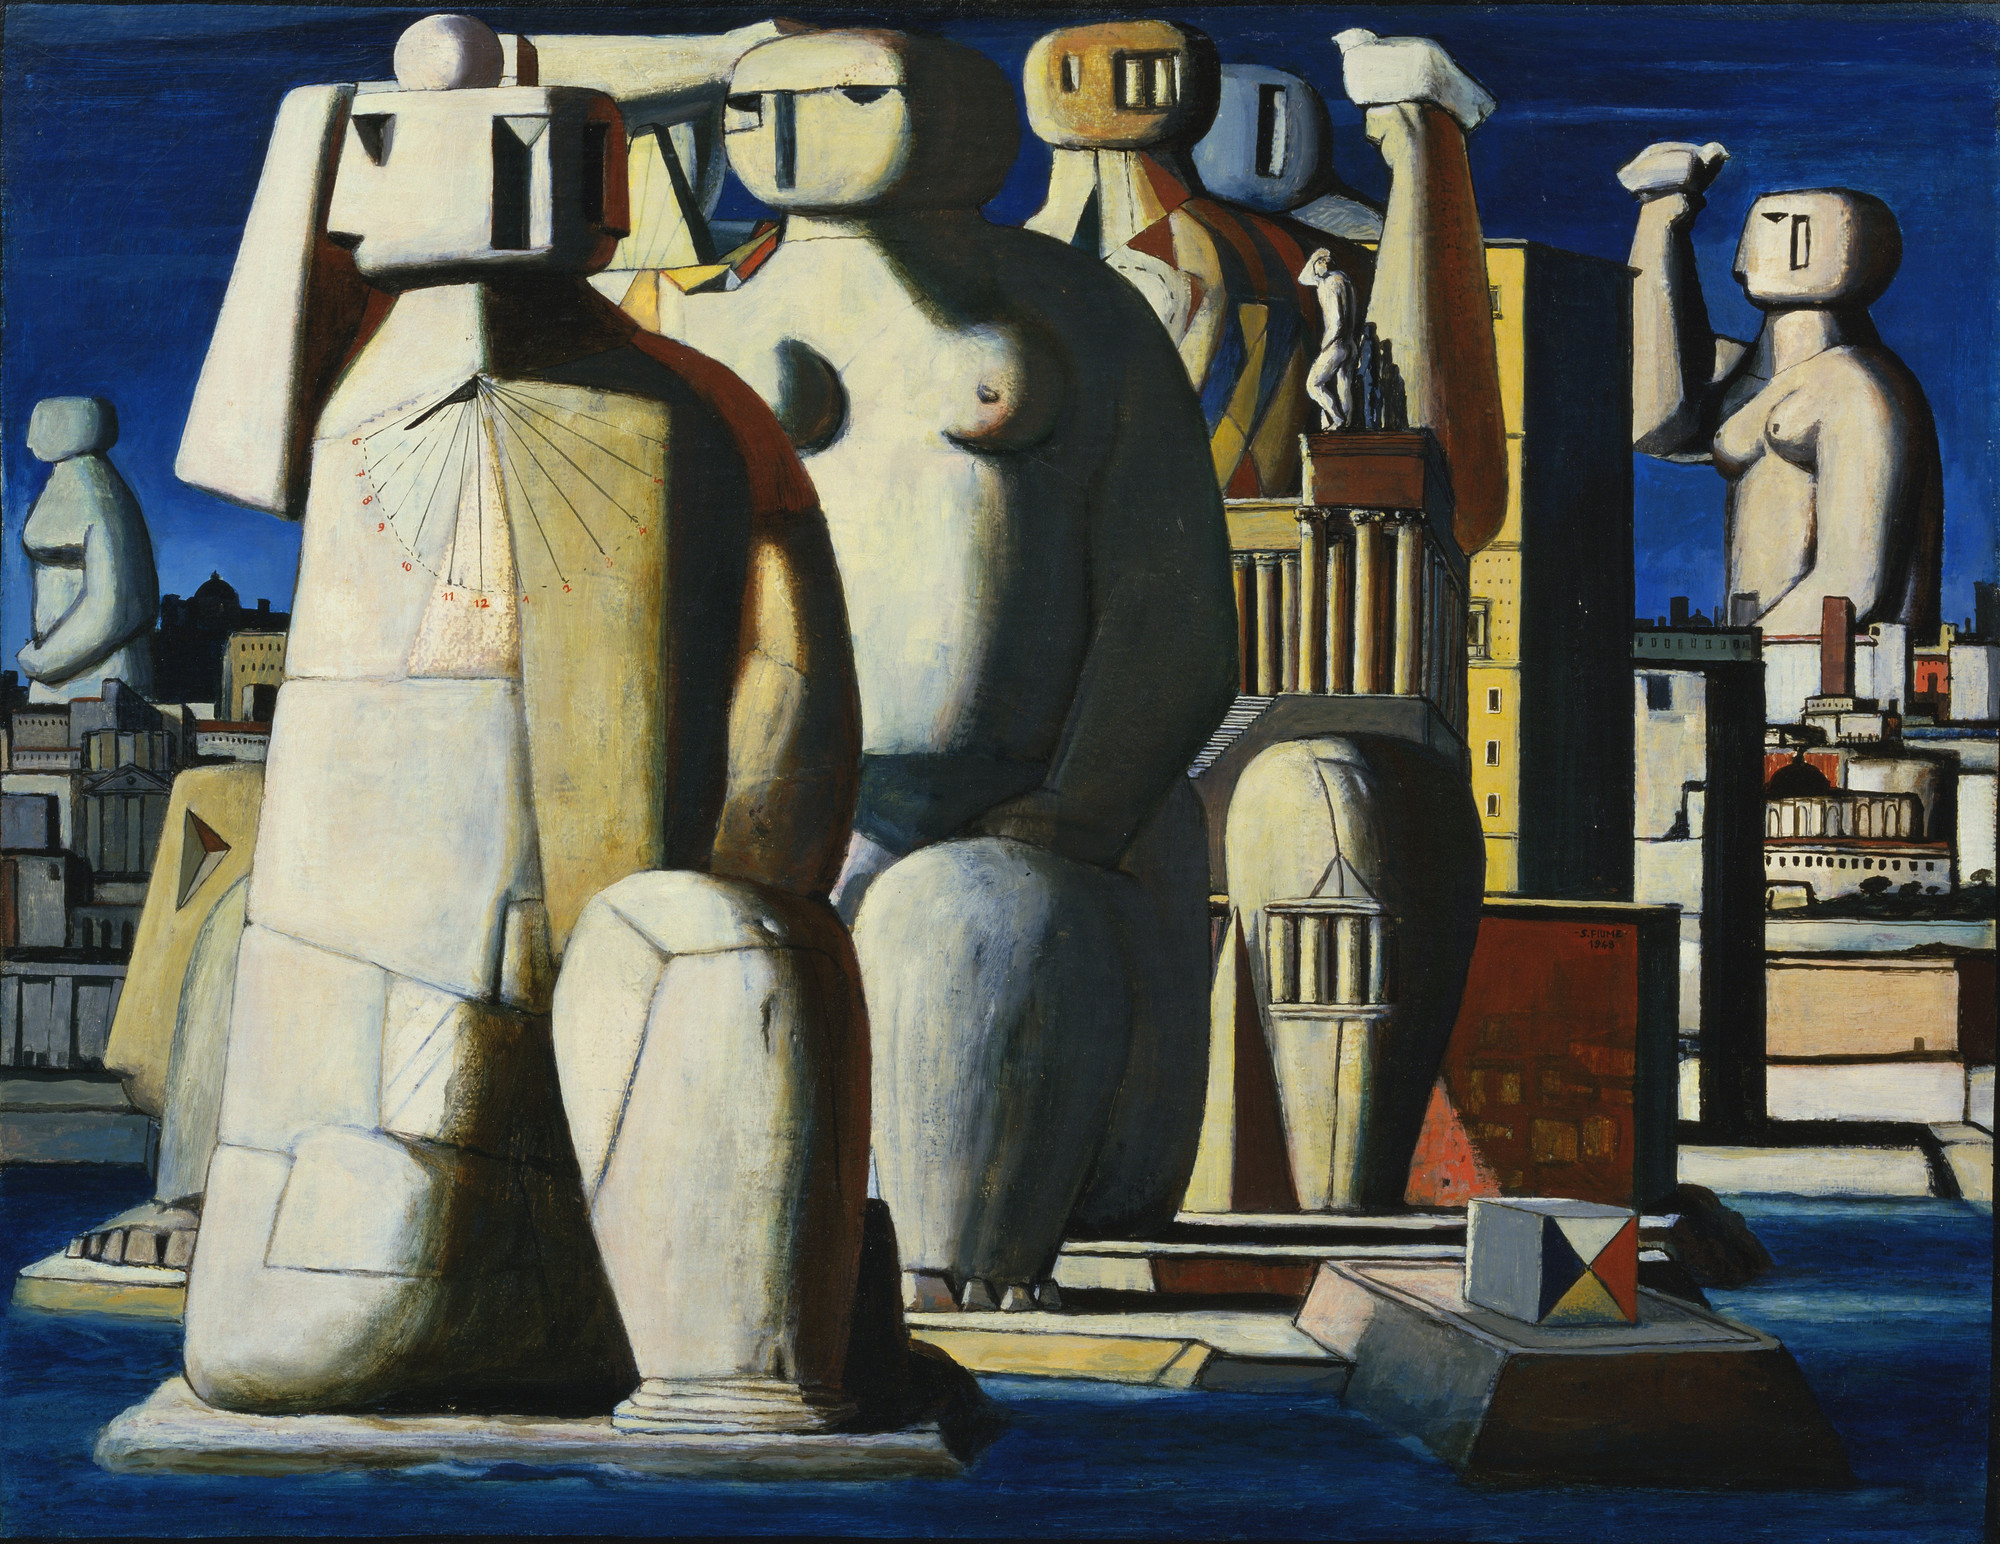 Salvatore Fiume. Island of Statues. 1948